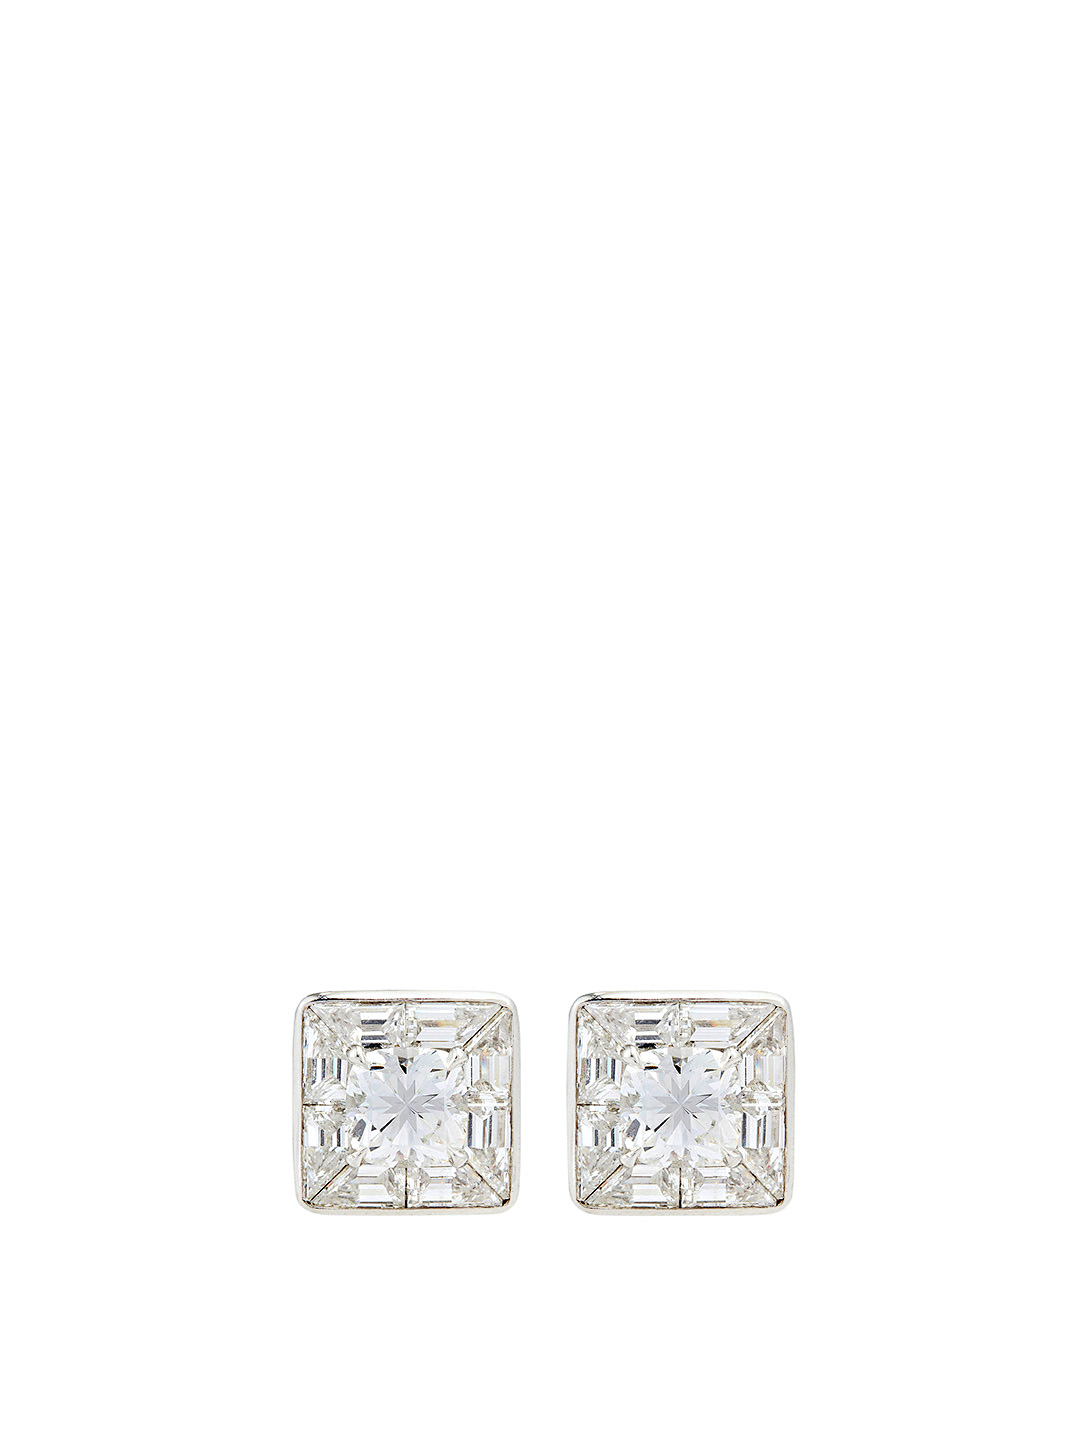 MARIA CANALE Deco Platinum Bespoke Cushion Diamond Earrings Women's Metallic